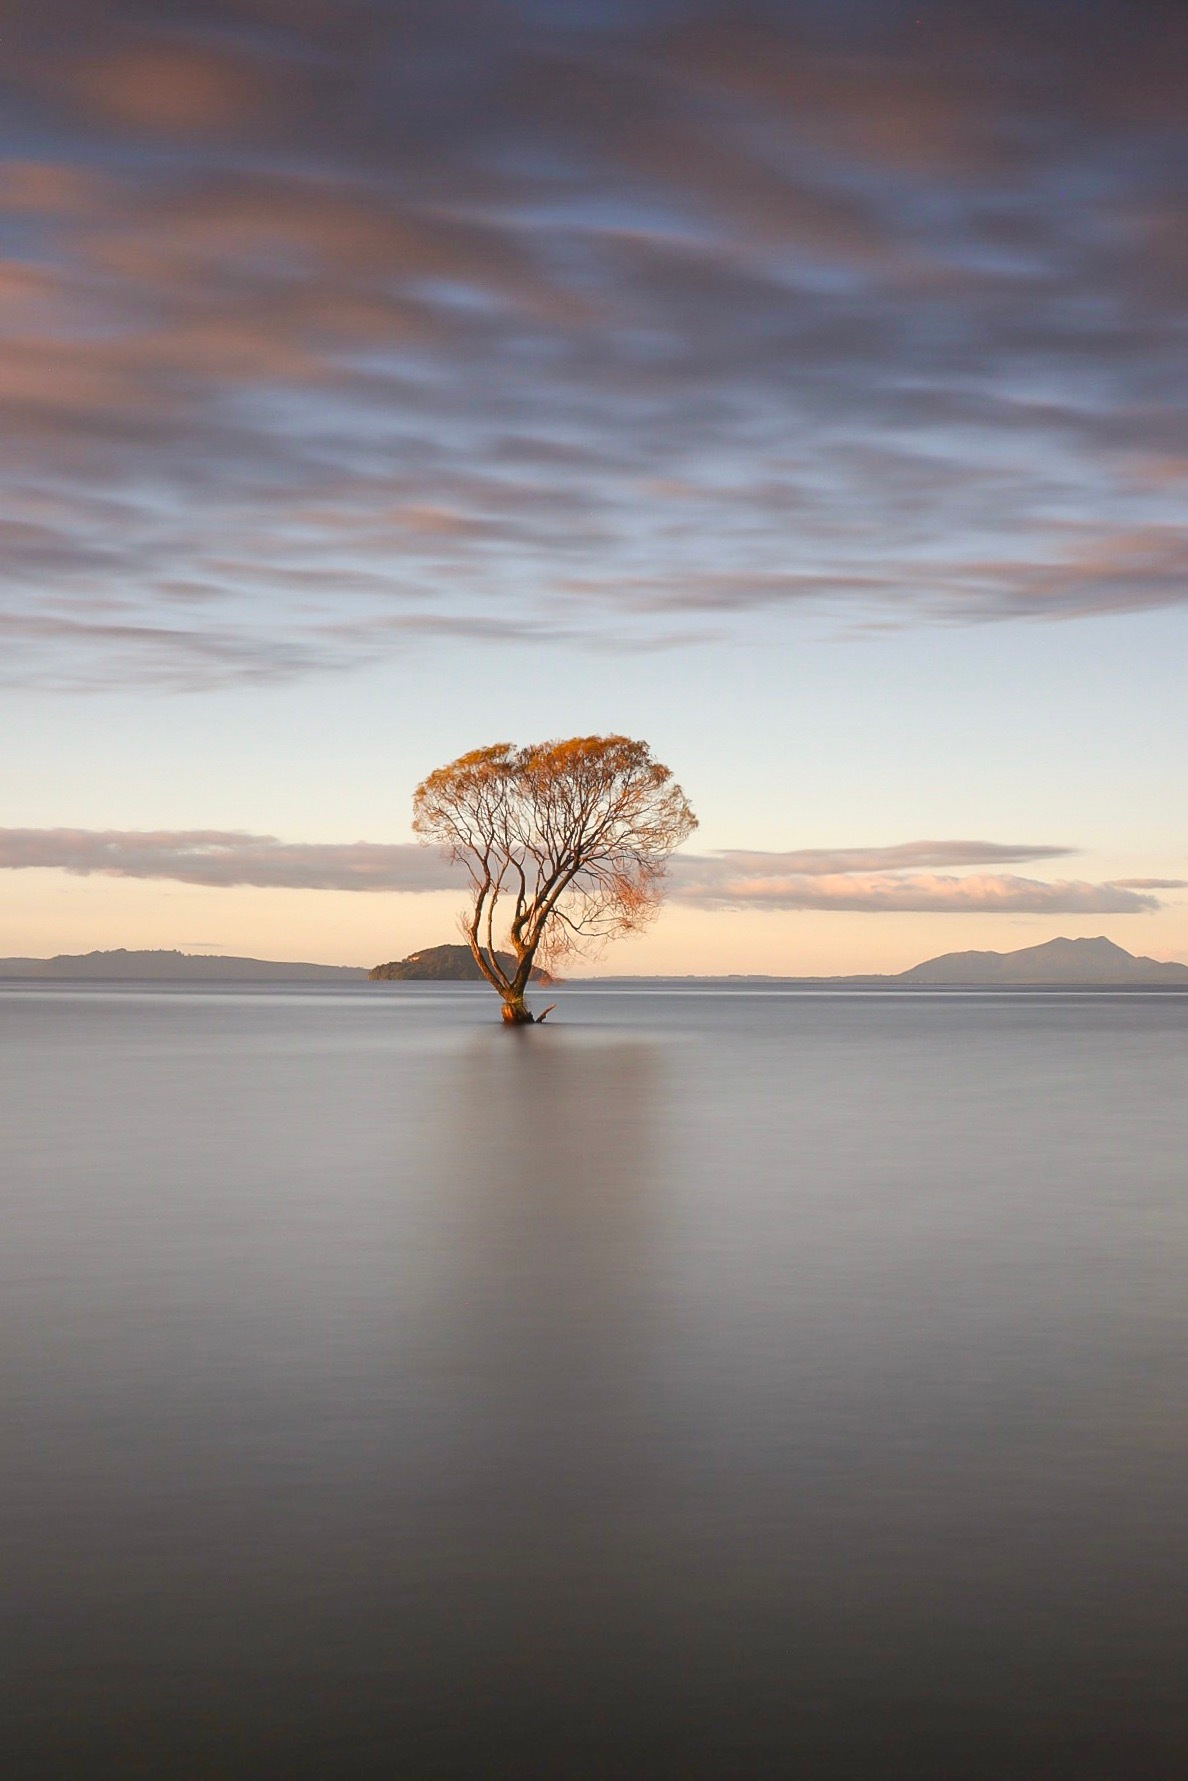 The lonely tree by Colin Sherman